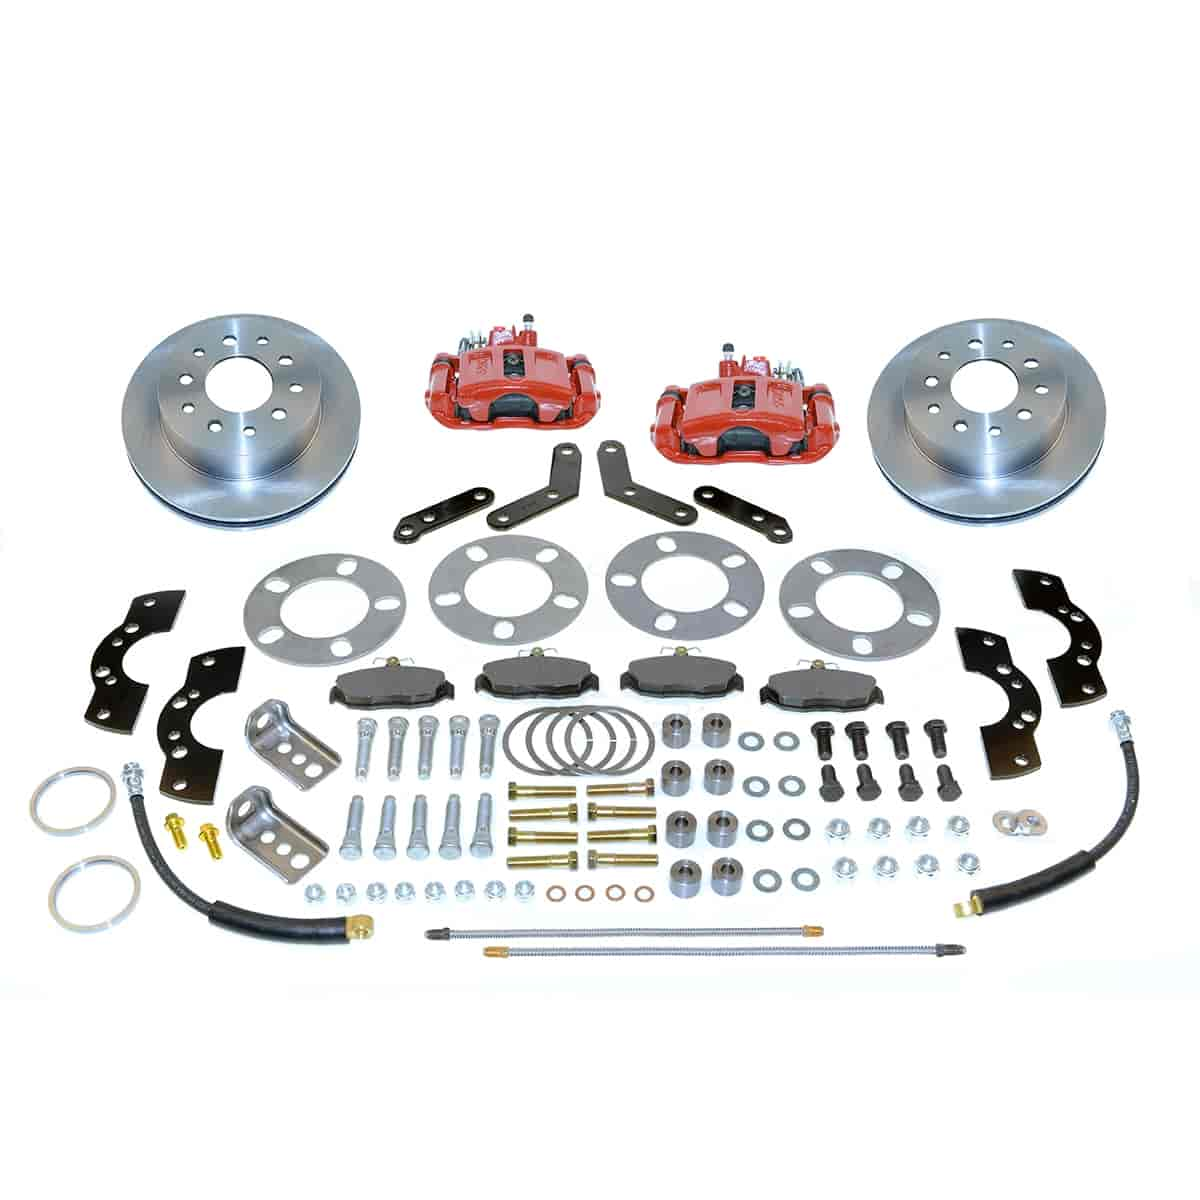 SSBC A111-2R - Stainless Steel Brakes Single Piston Rear Disc Brake Conversion Kit